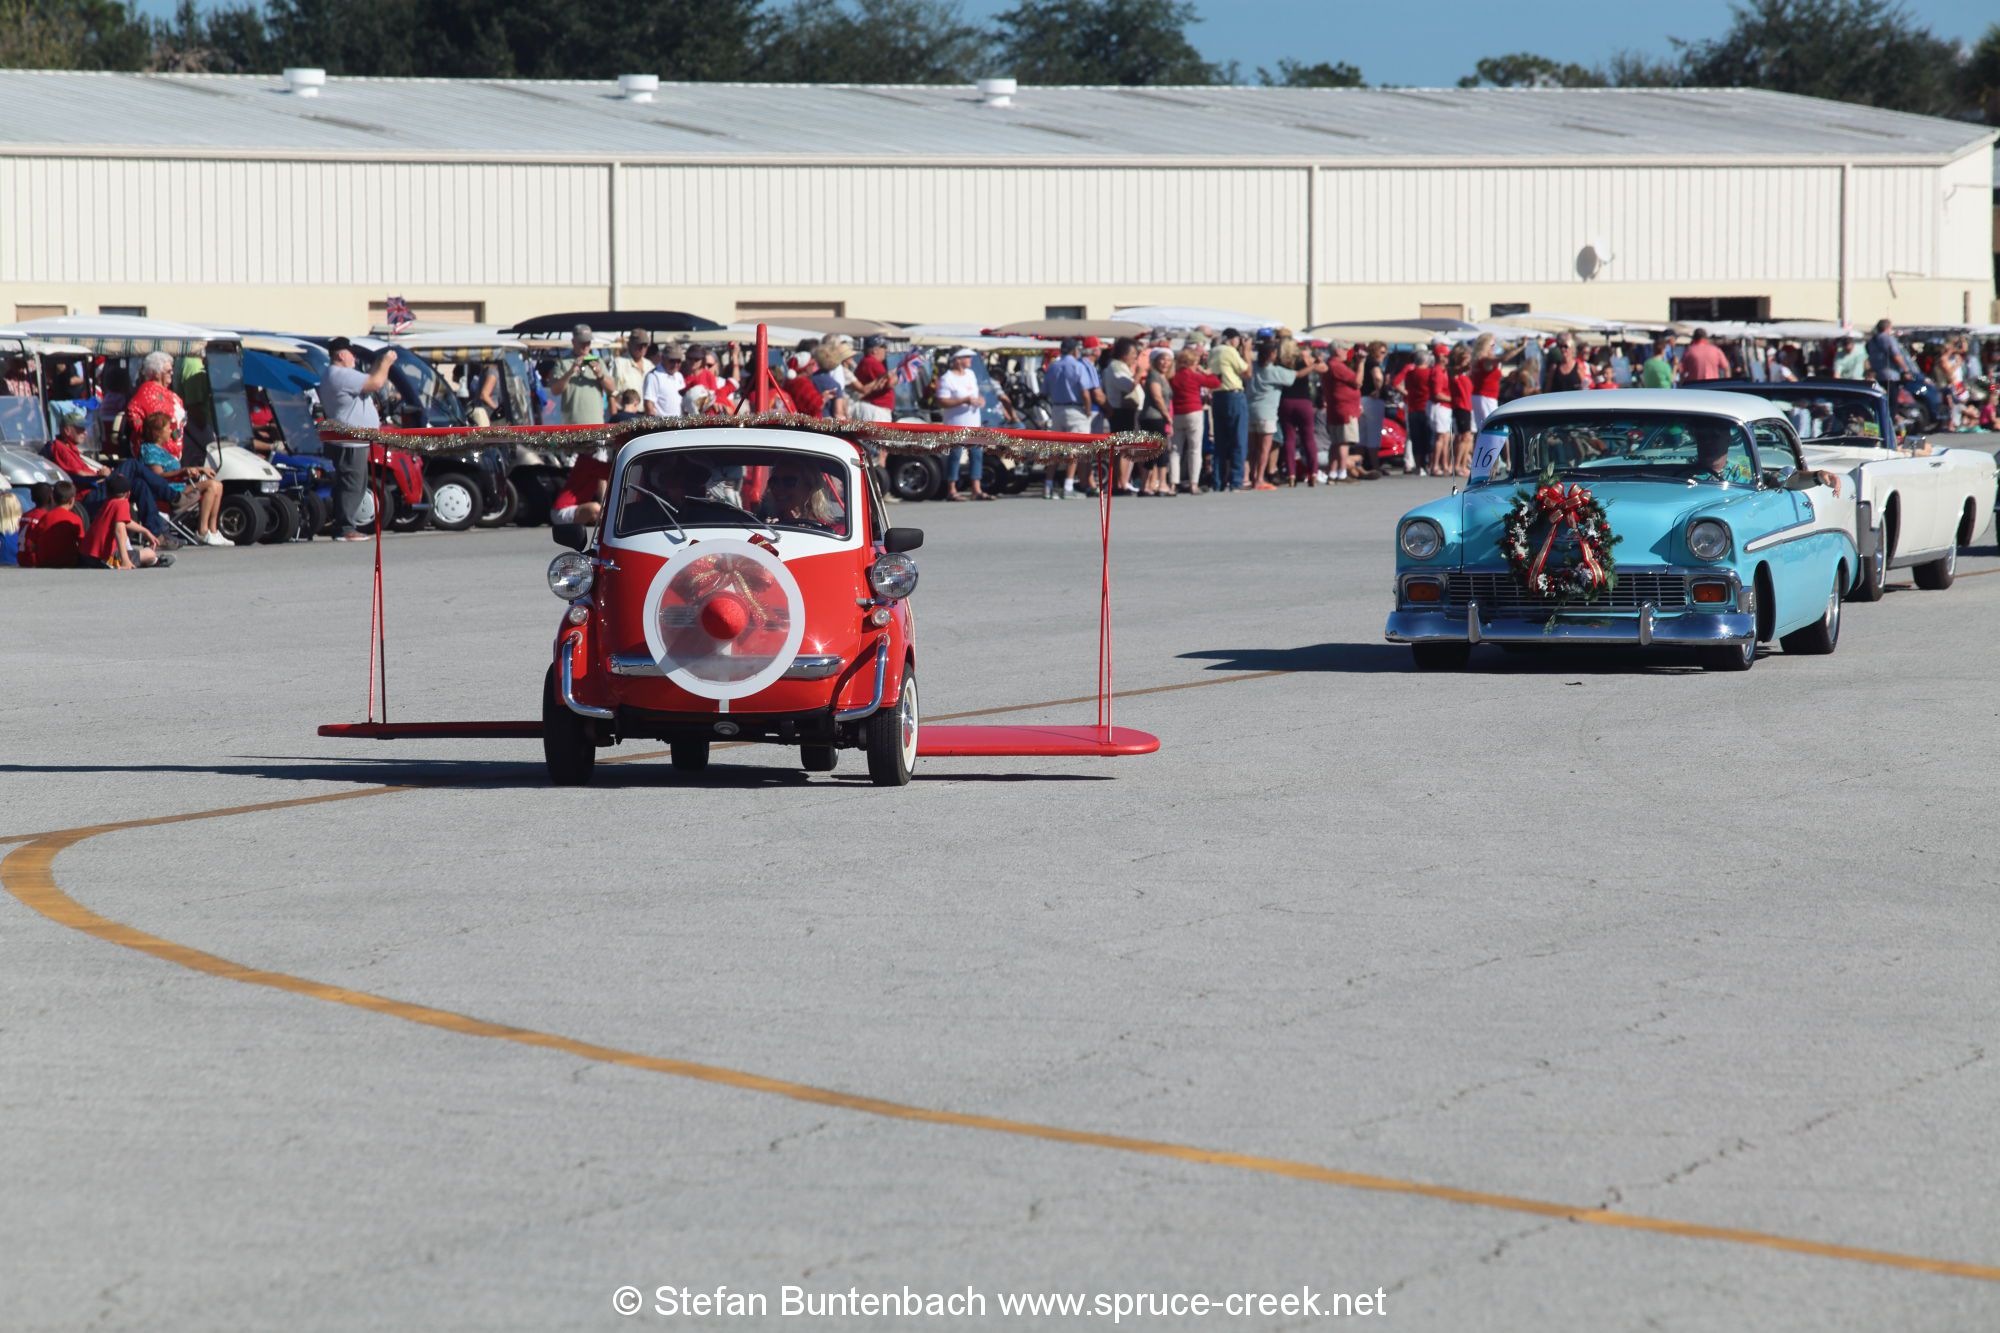 Spruce-Creek-Toyparade-2015- IMG_1550